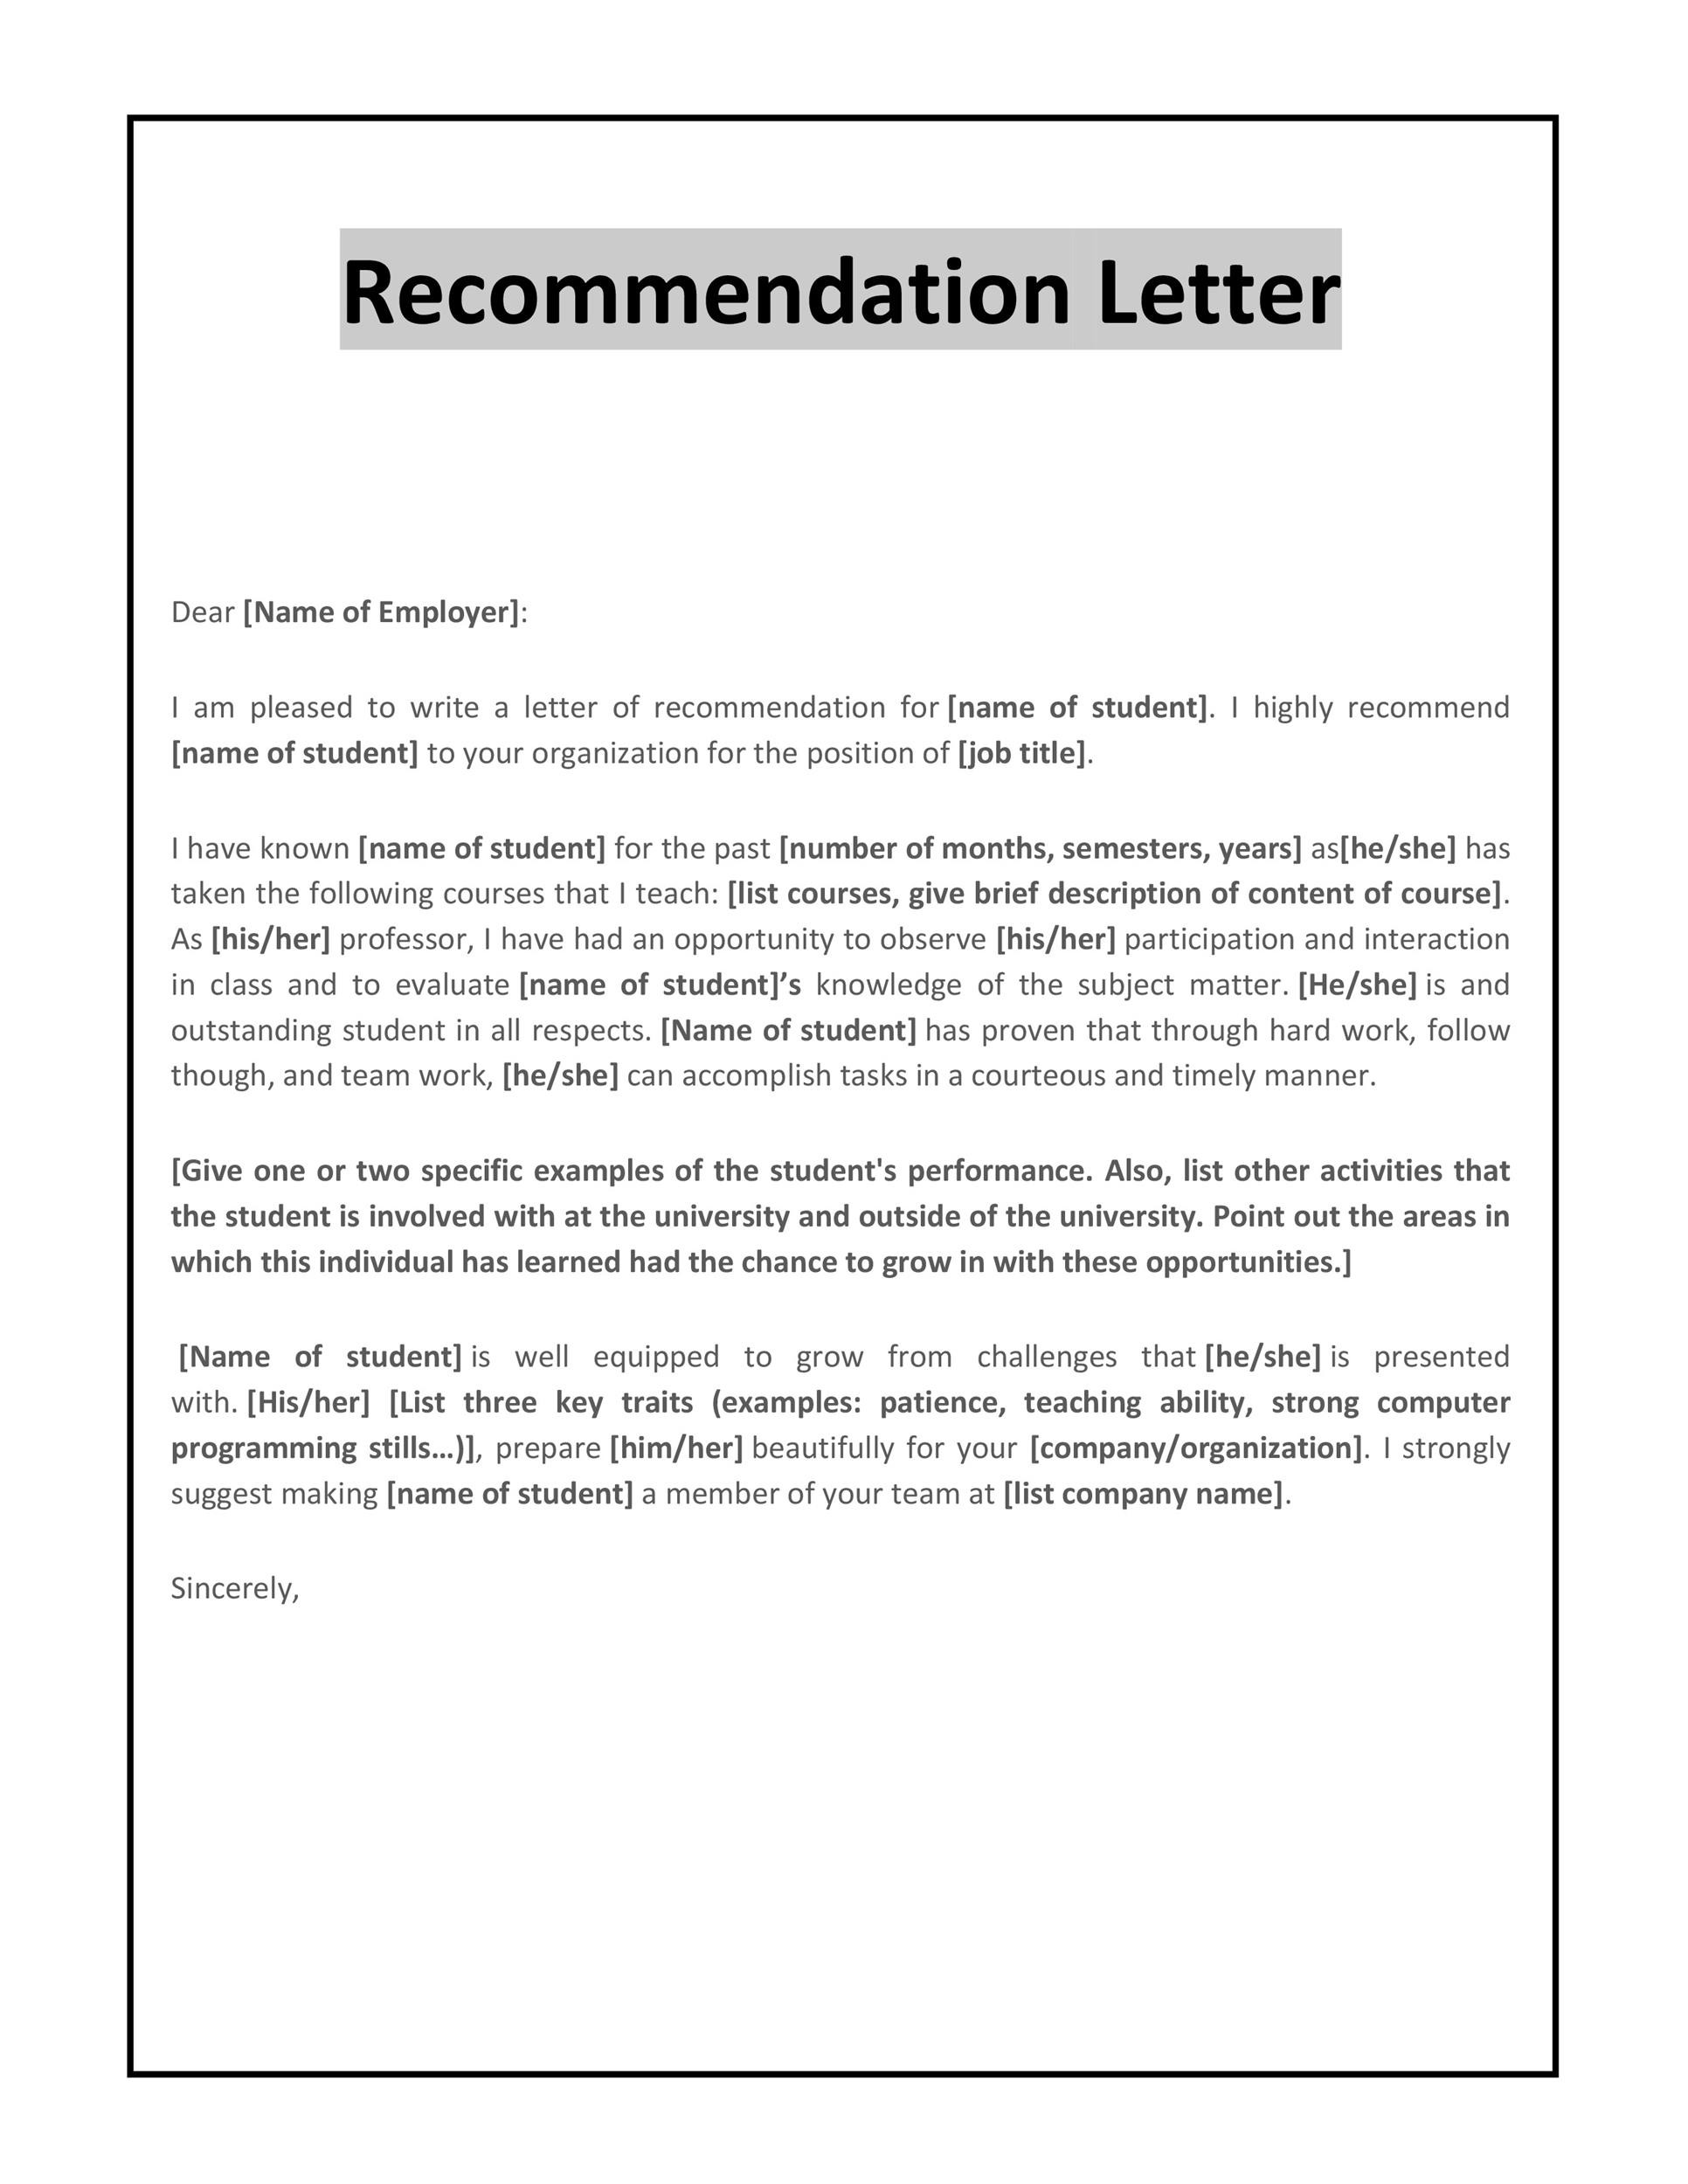 writing a recommendation letter 43 free letter of recommendation templates amp samples 21129